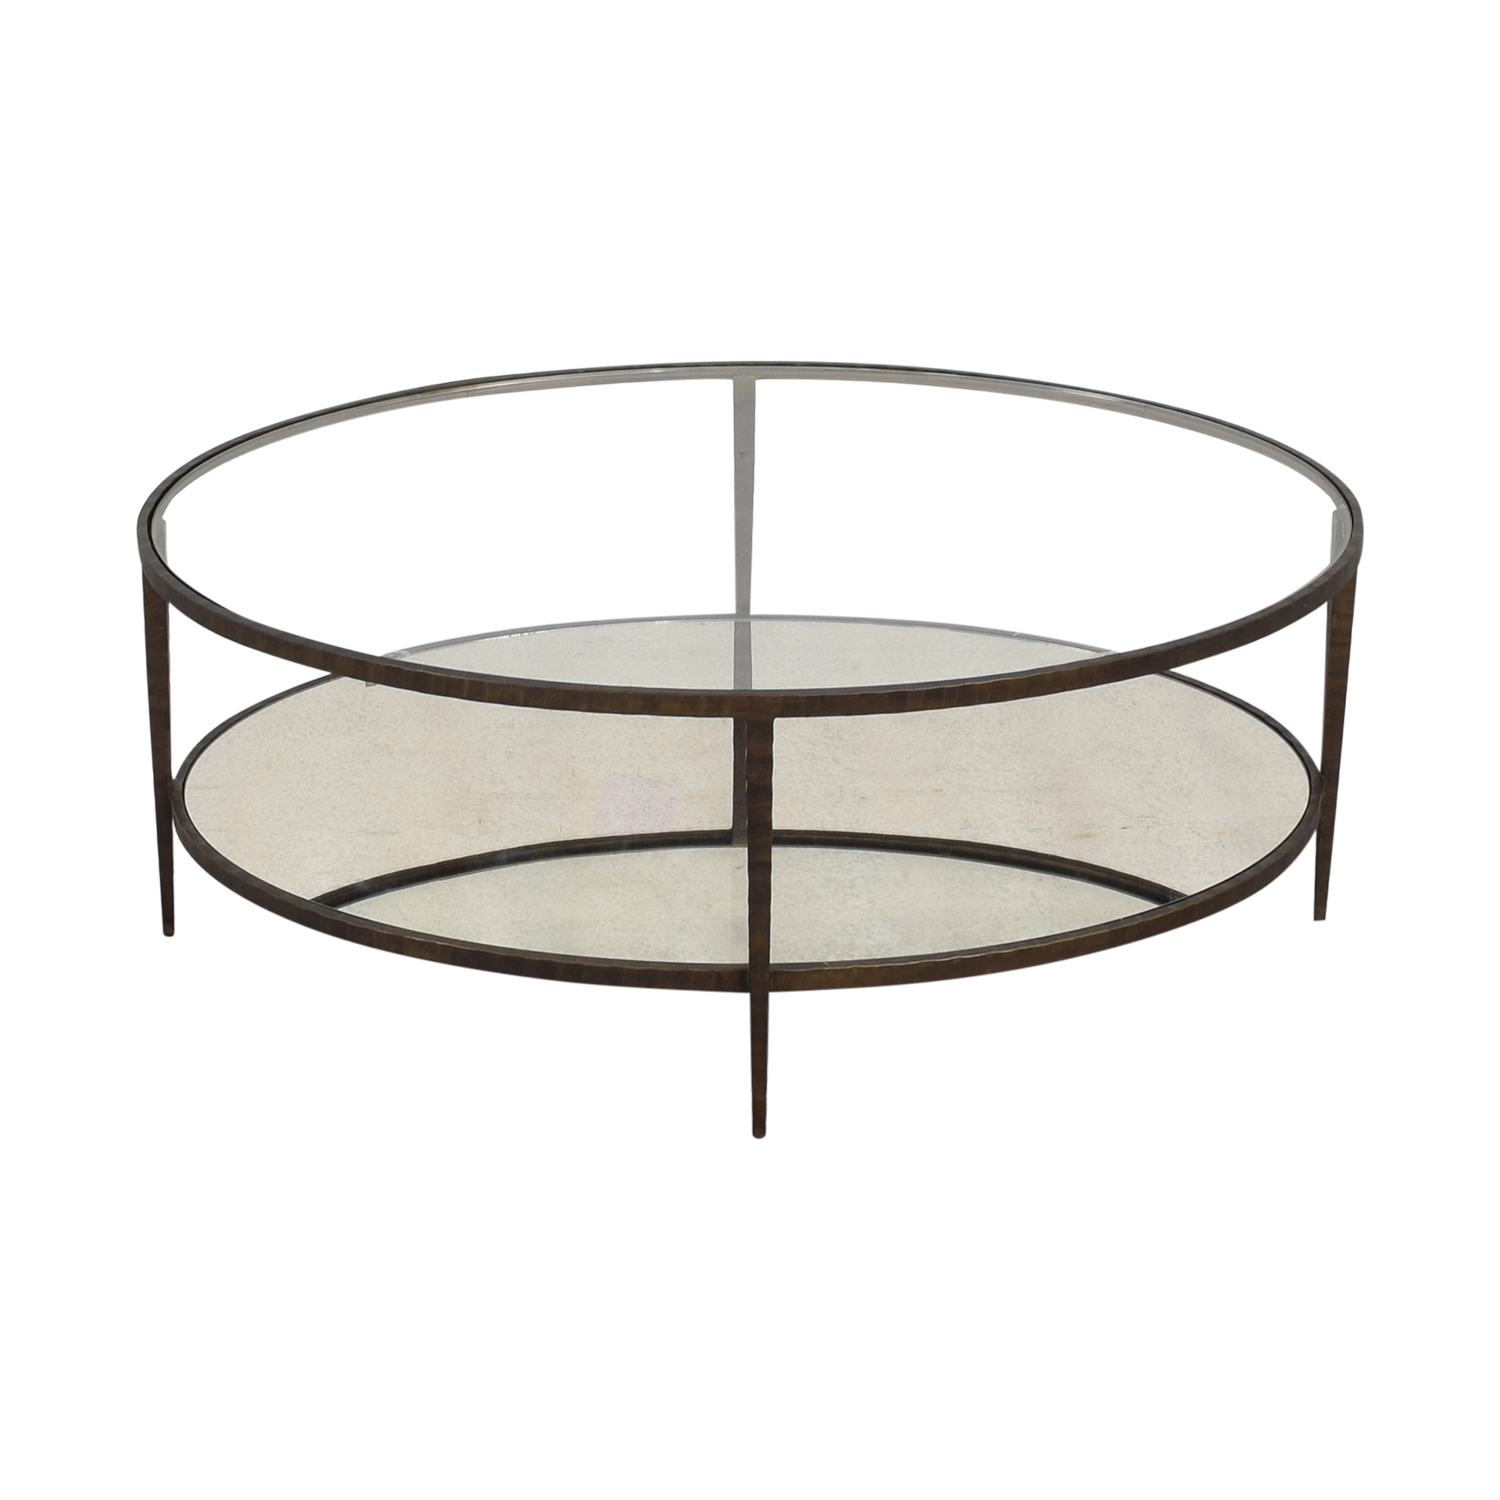 Crate & Barrel Clairemont Oval Coffee Table